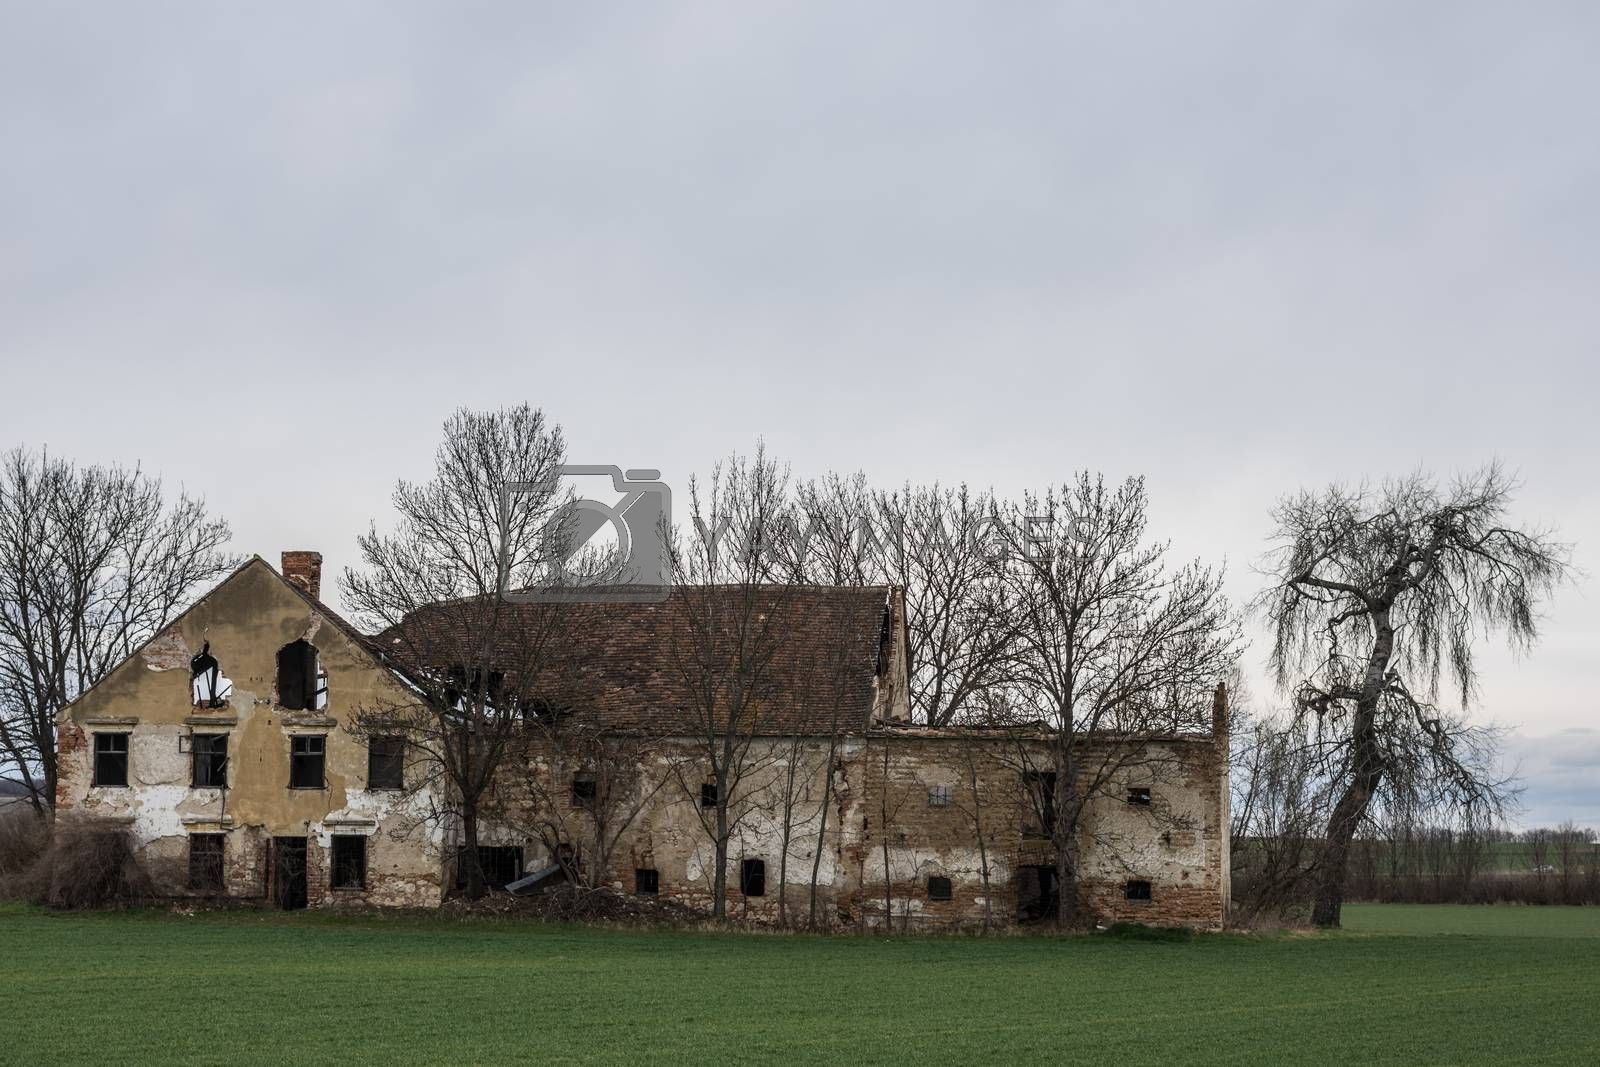 old abandoned mill and trees in the country